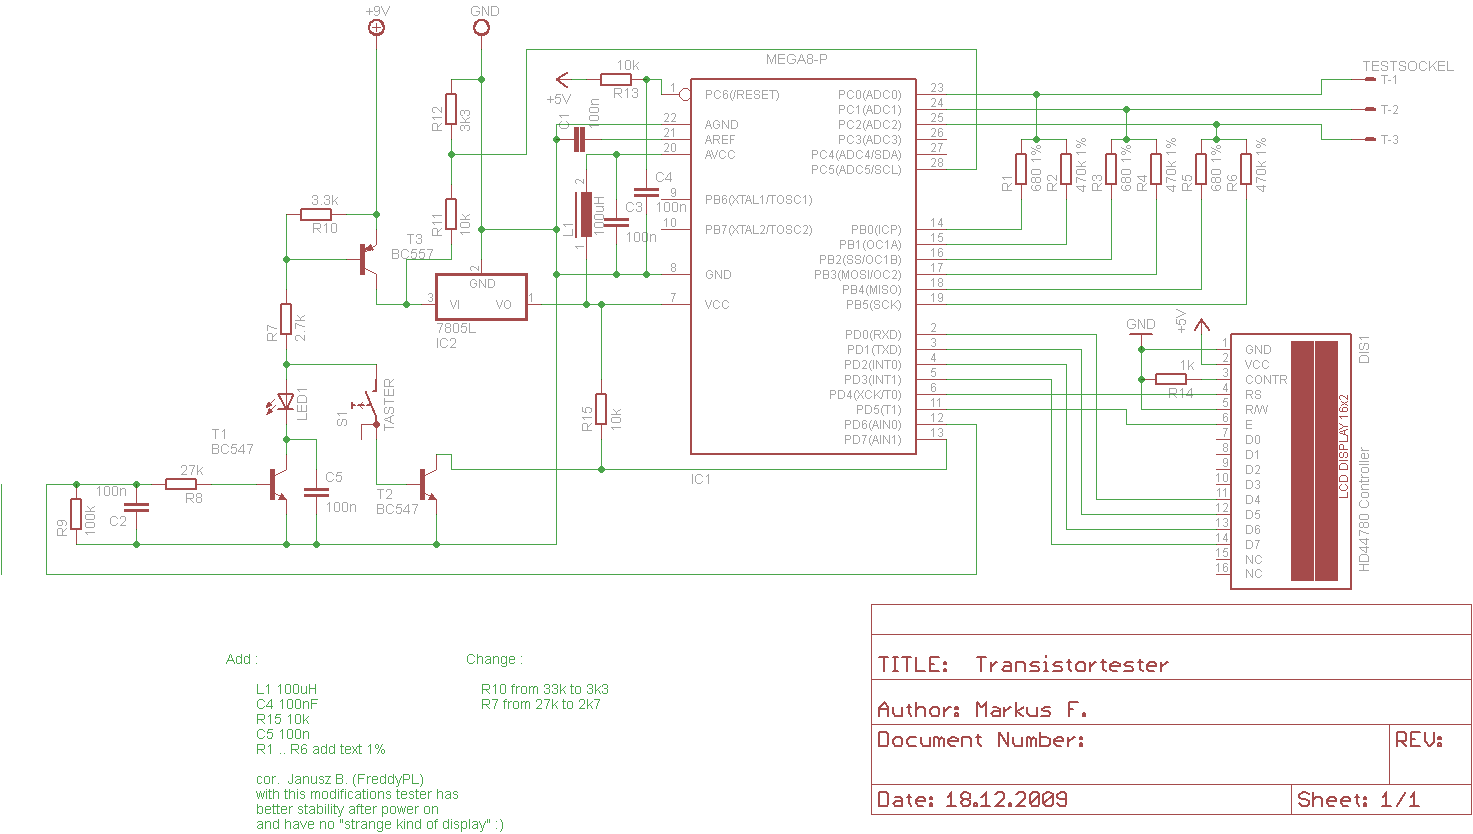 Preview image for schematic png